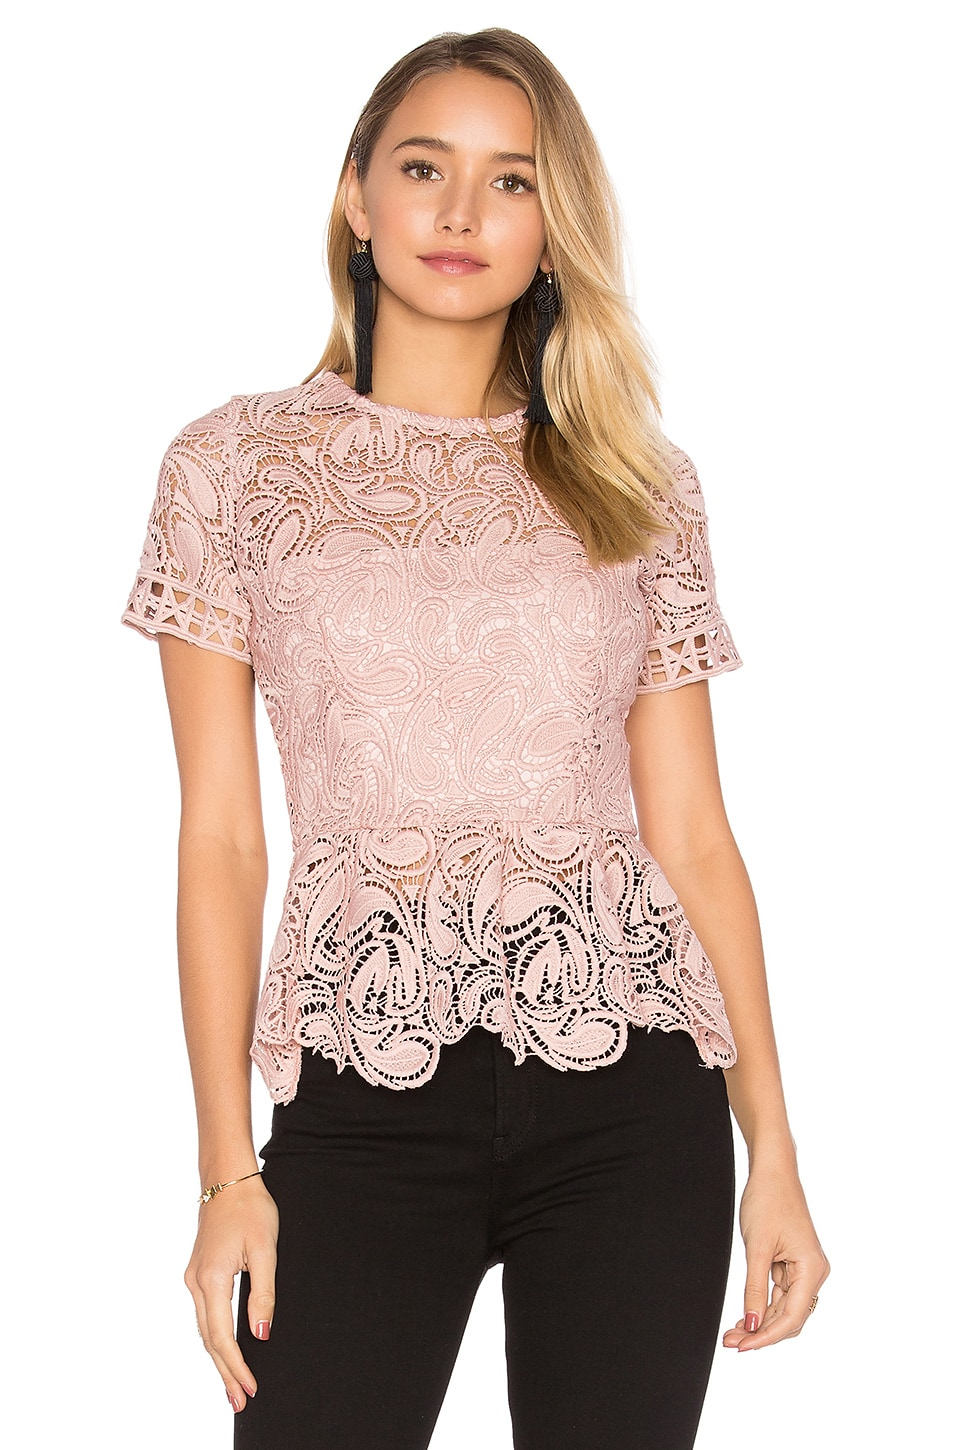 Rosa Lace Top by Karina Grimaldi